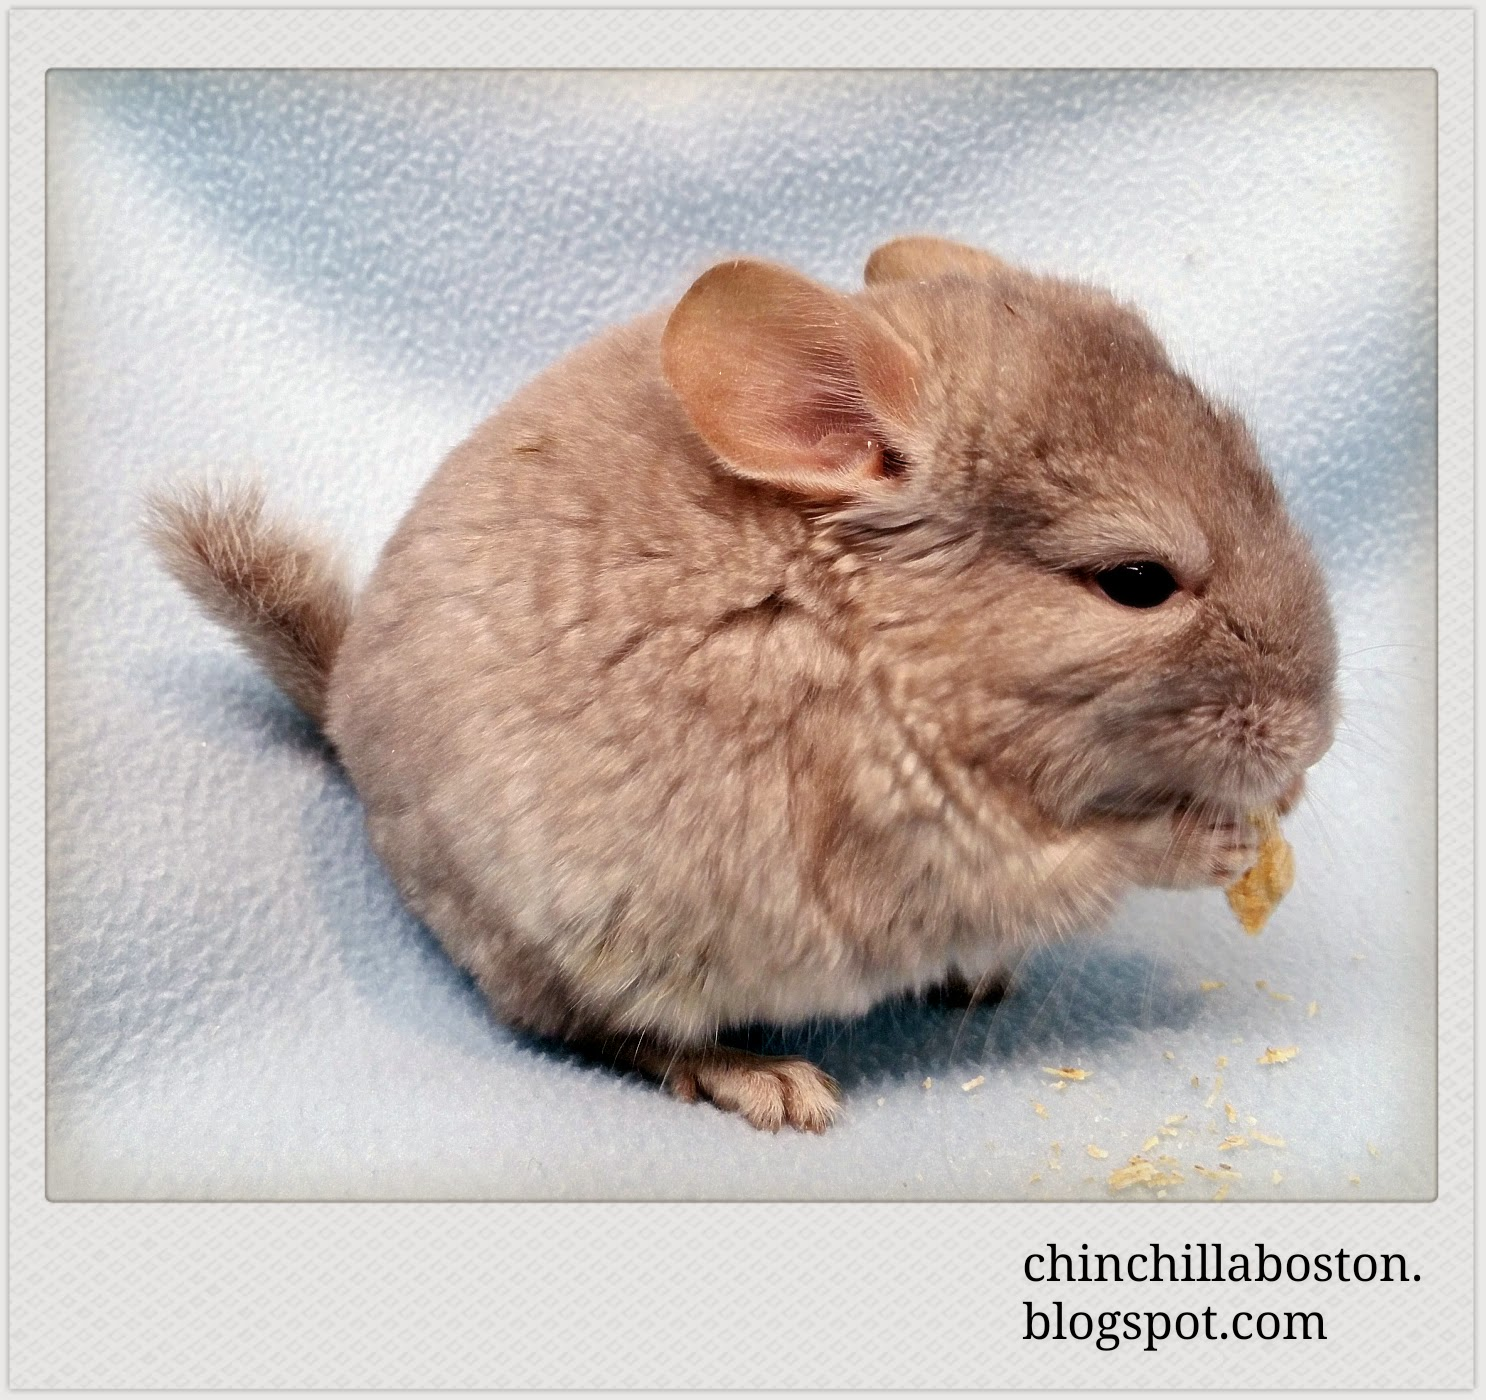 Chinchilla Boston